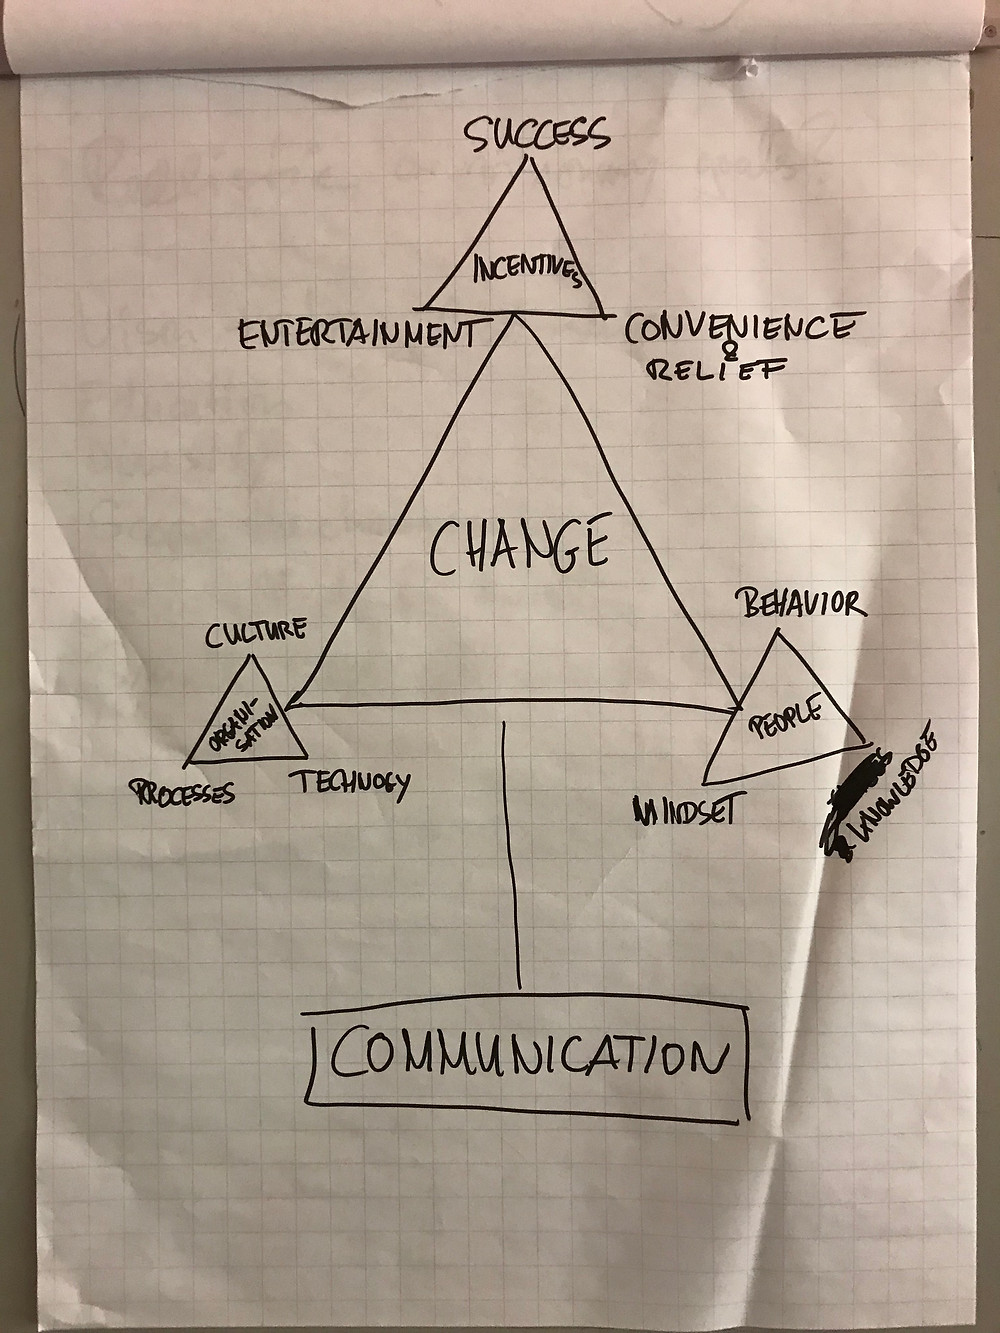 The Science of Change Triangles – the original outcome of the workshop.